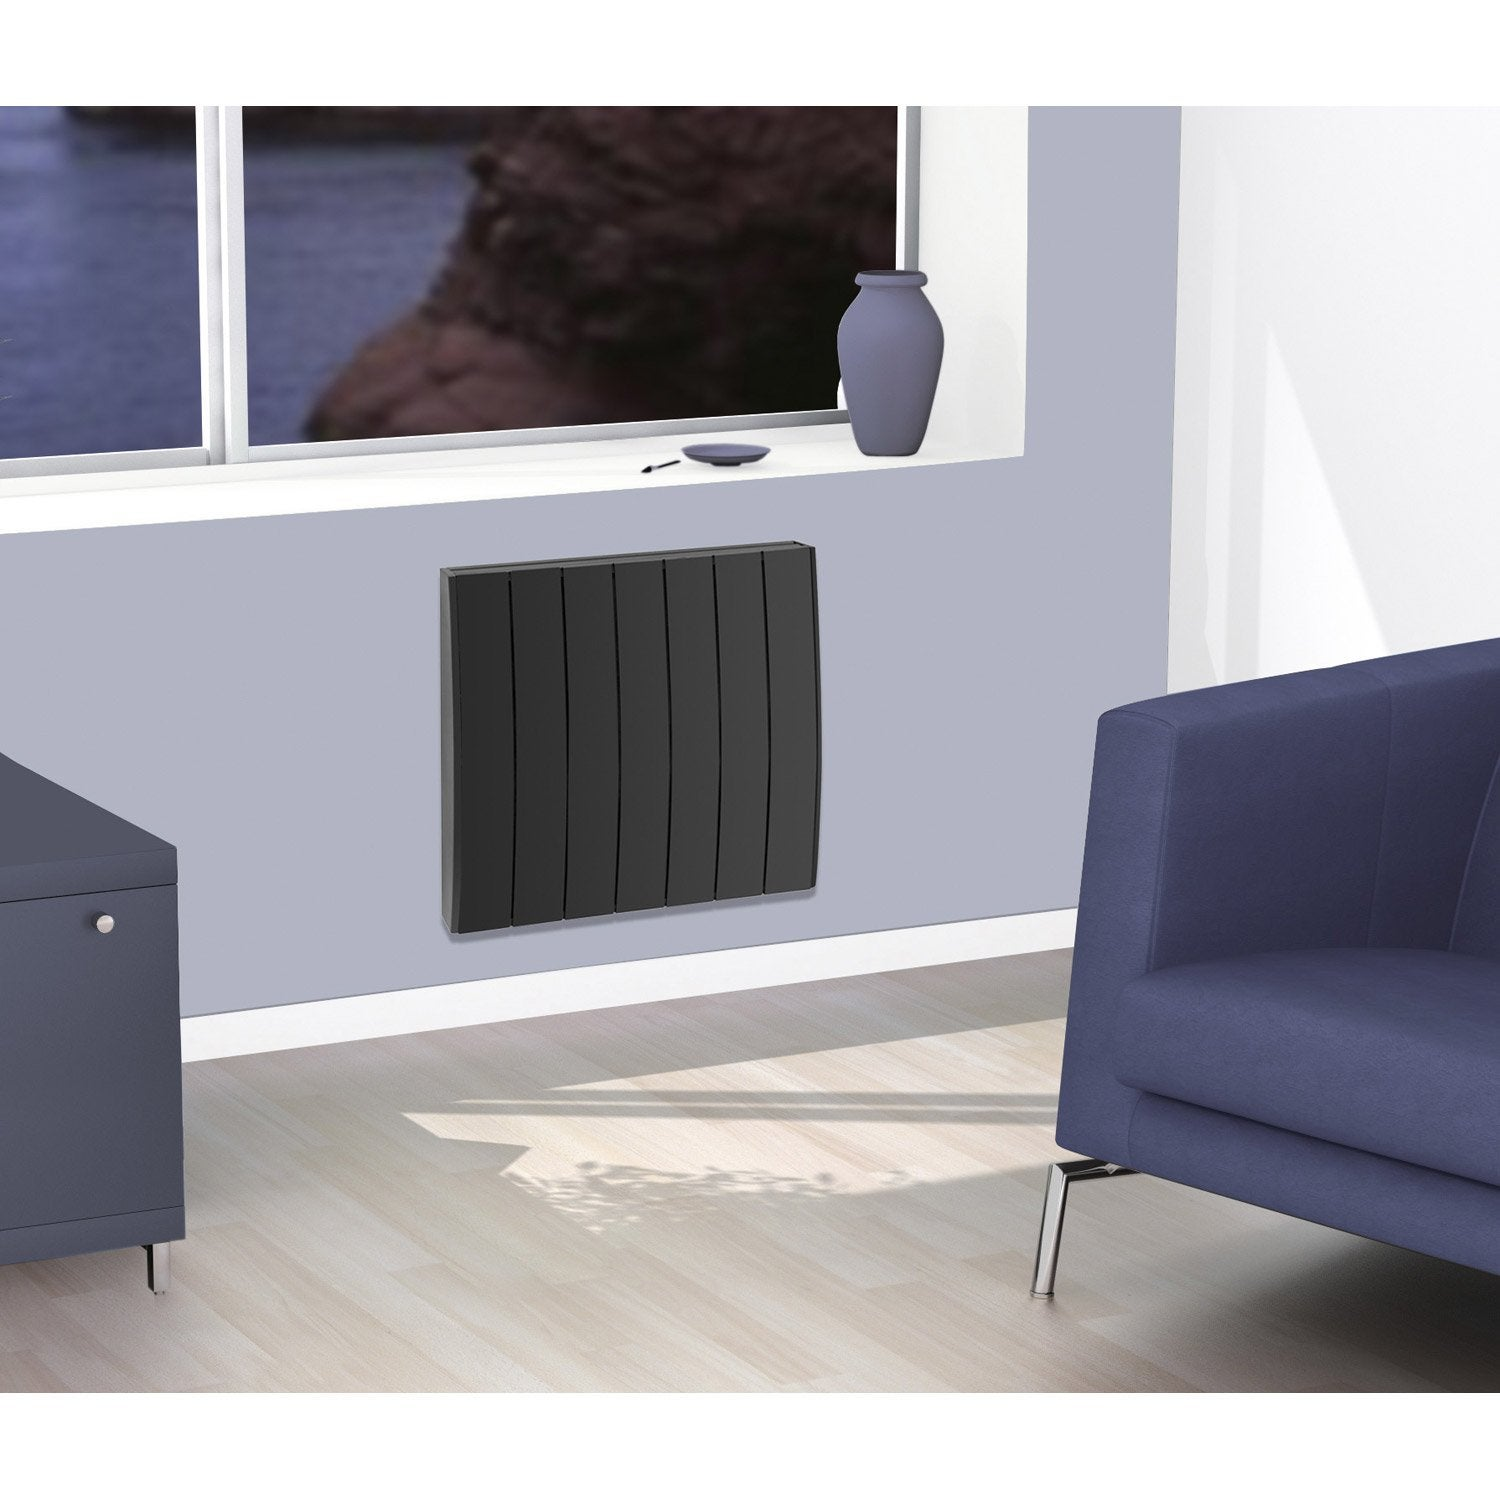 radiateur lectrique inertie pierre concorde pyrite 2. Black Bedroom Furniture Sets. Home Design Ideas